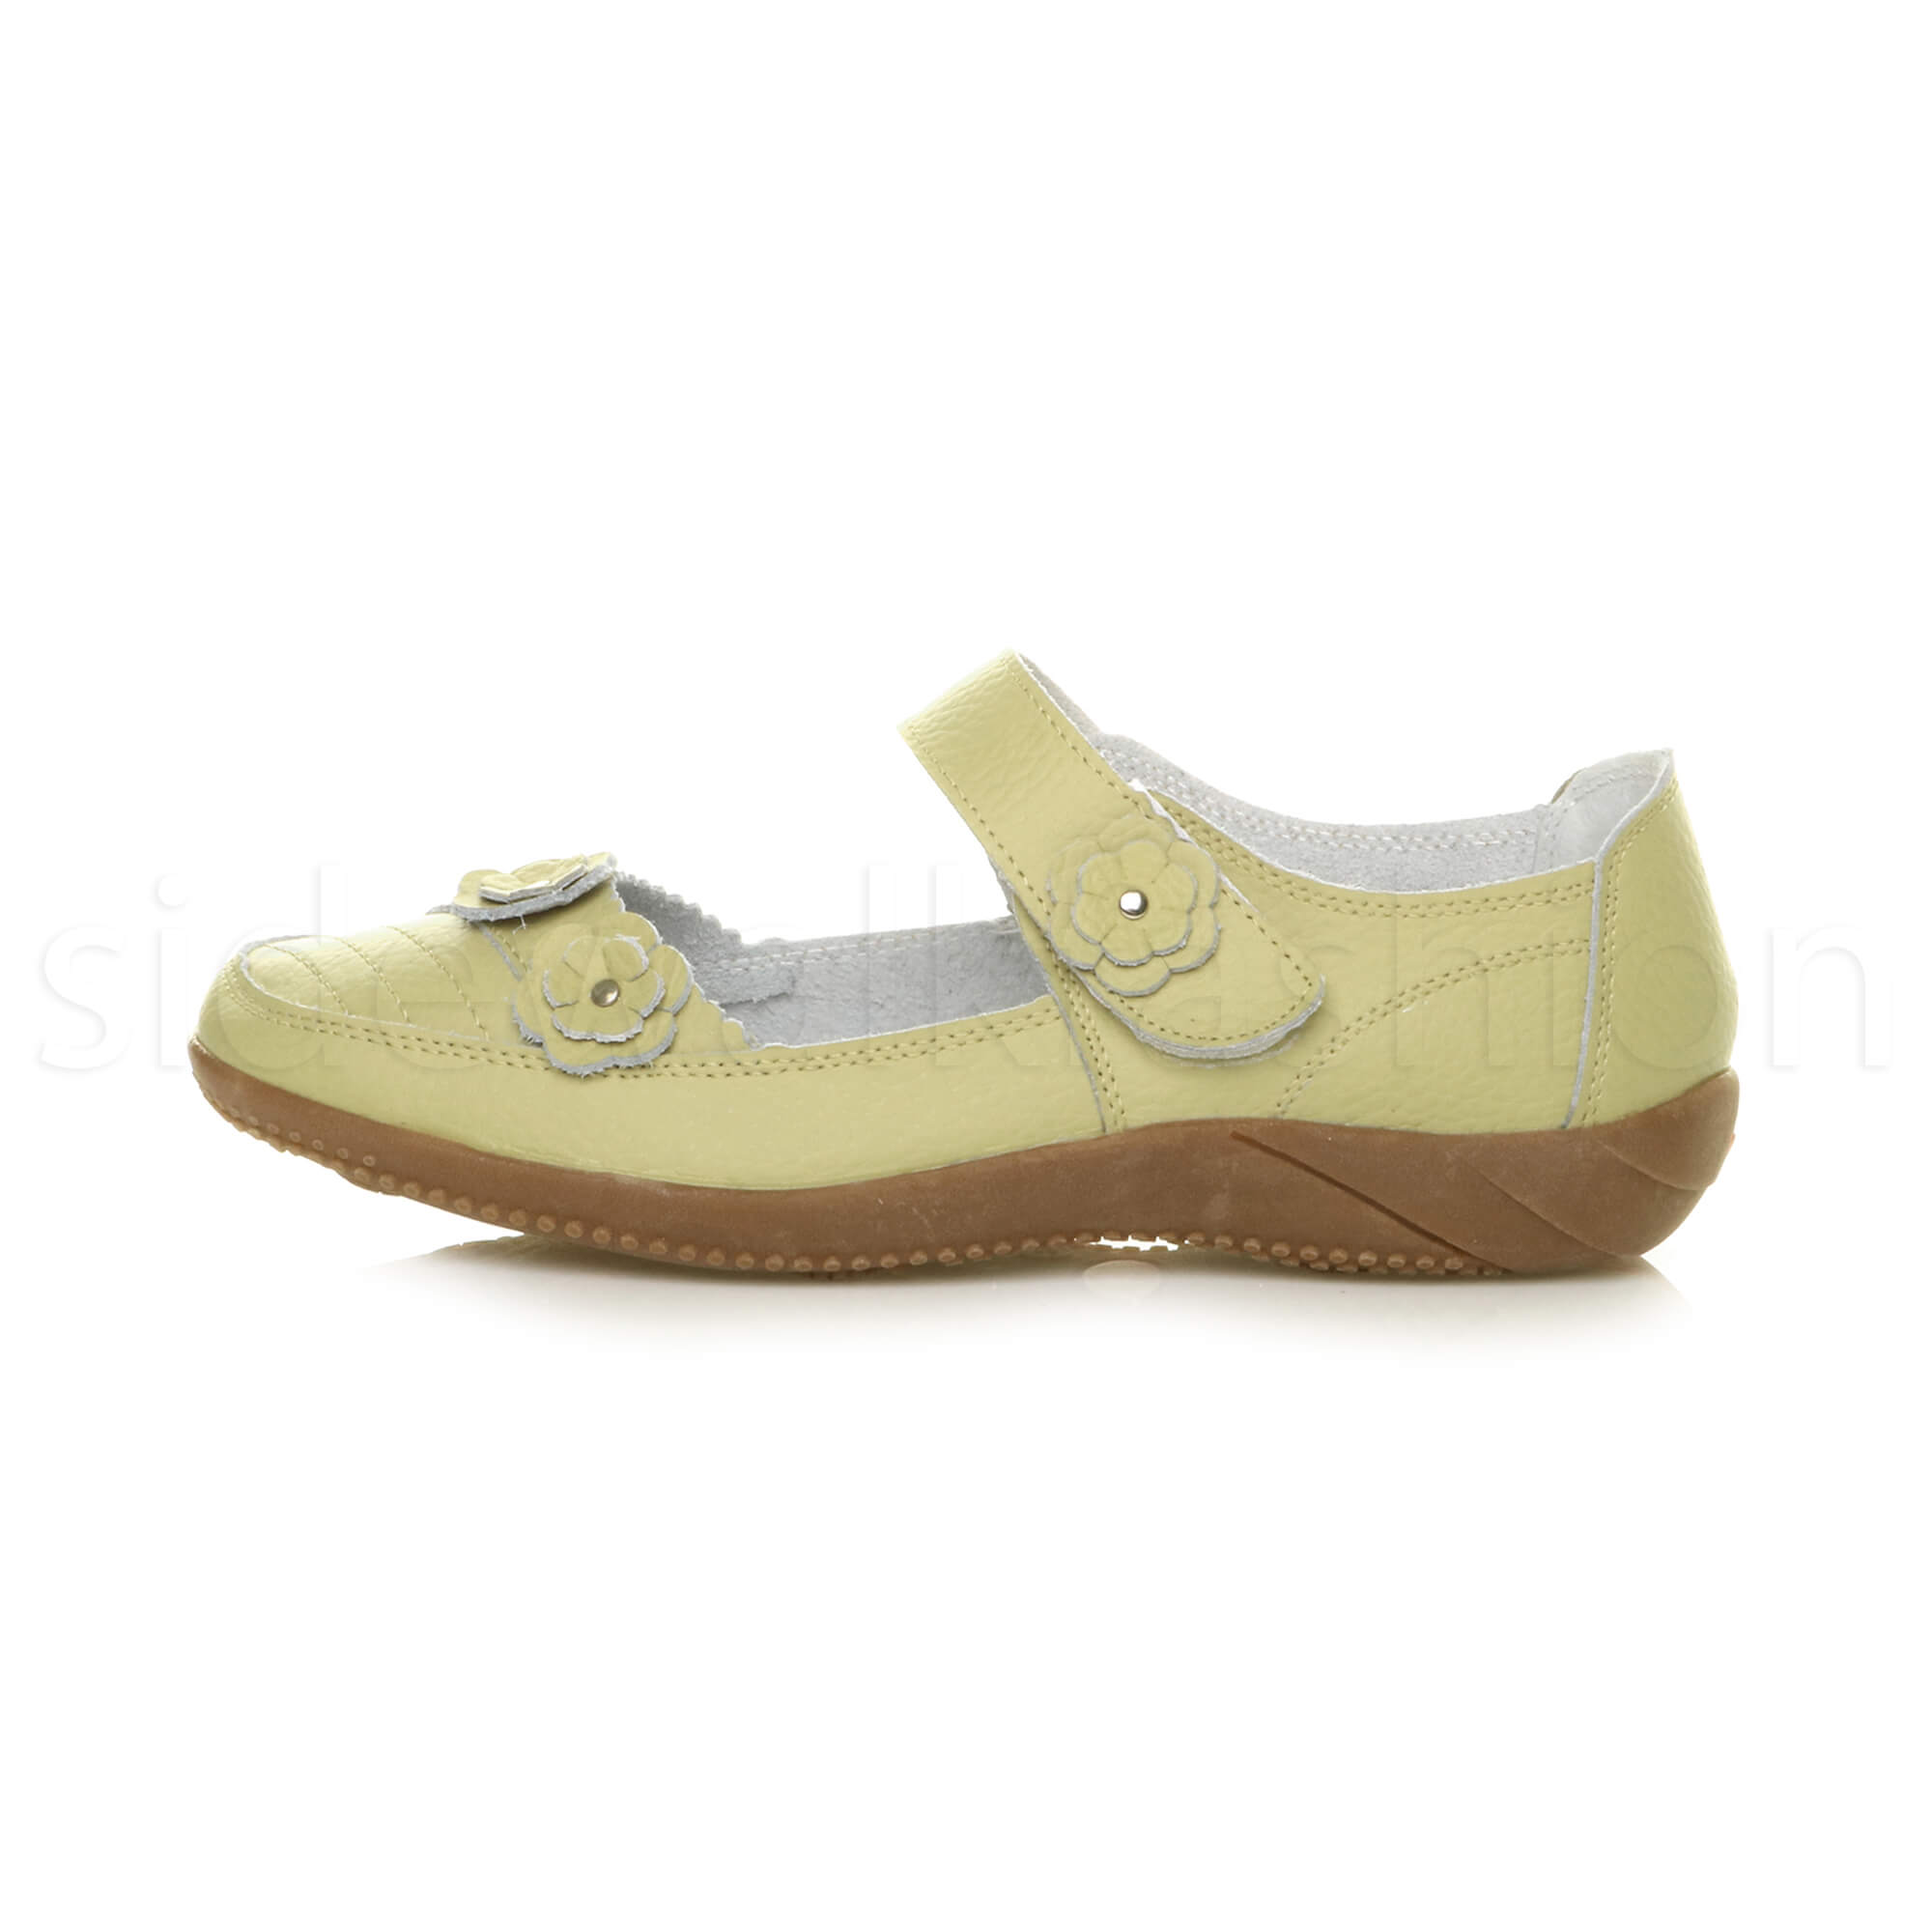 Womens-ladies-leather-comfort-walking-casual-sandals-mary-jane-strap-shoes-size thumbnail 43